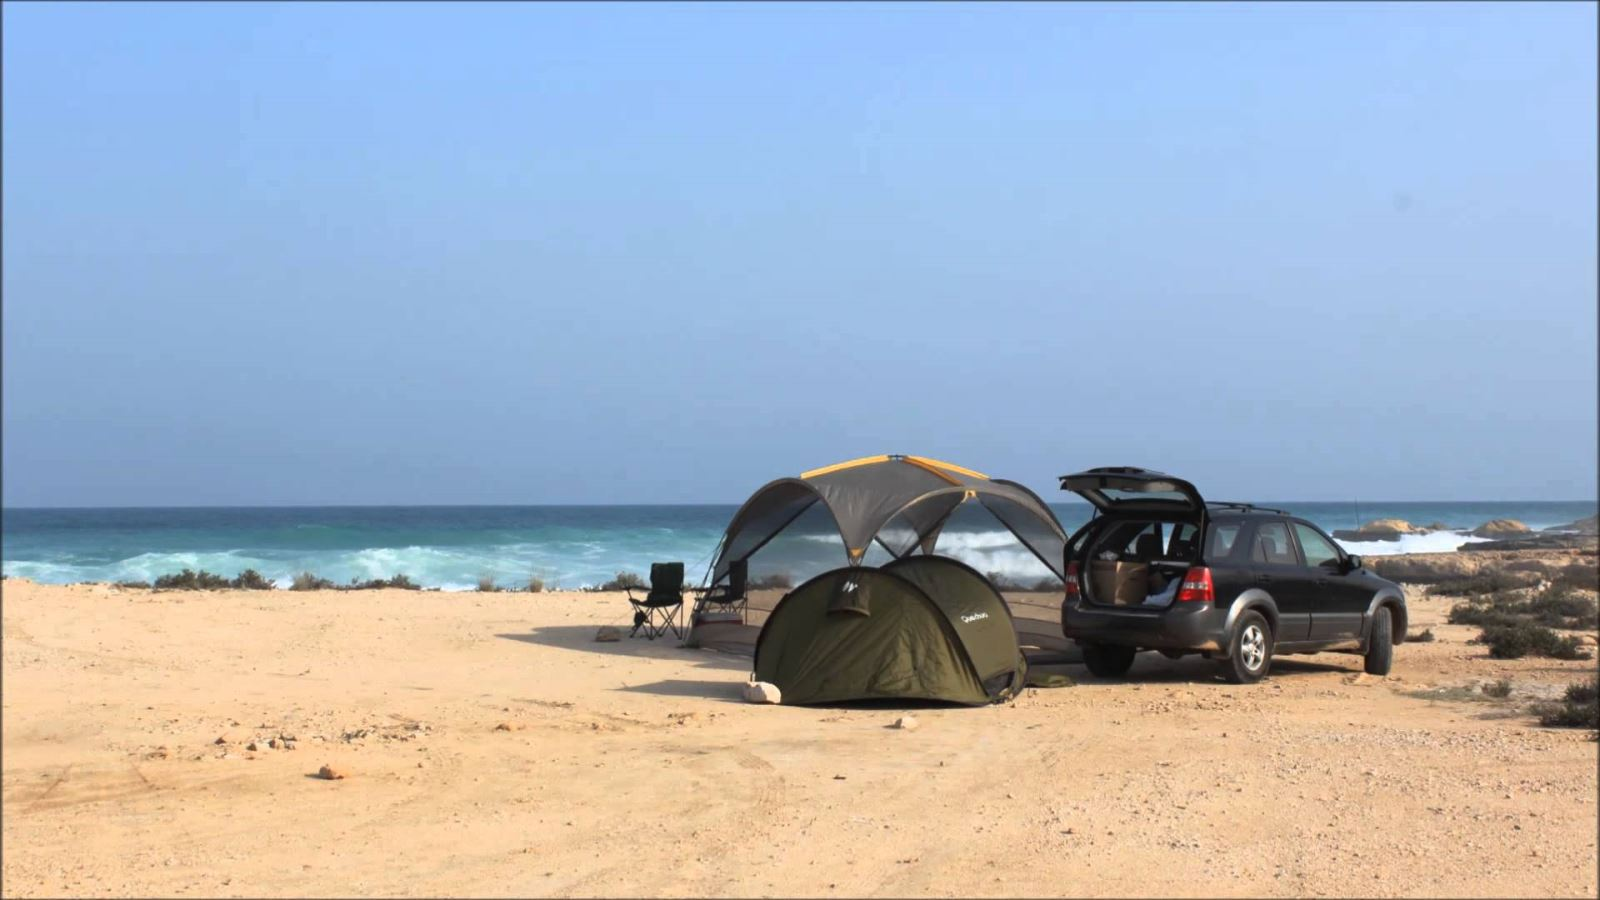 Beach camping in Oman